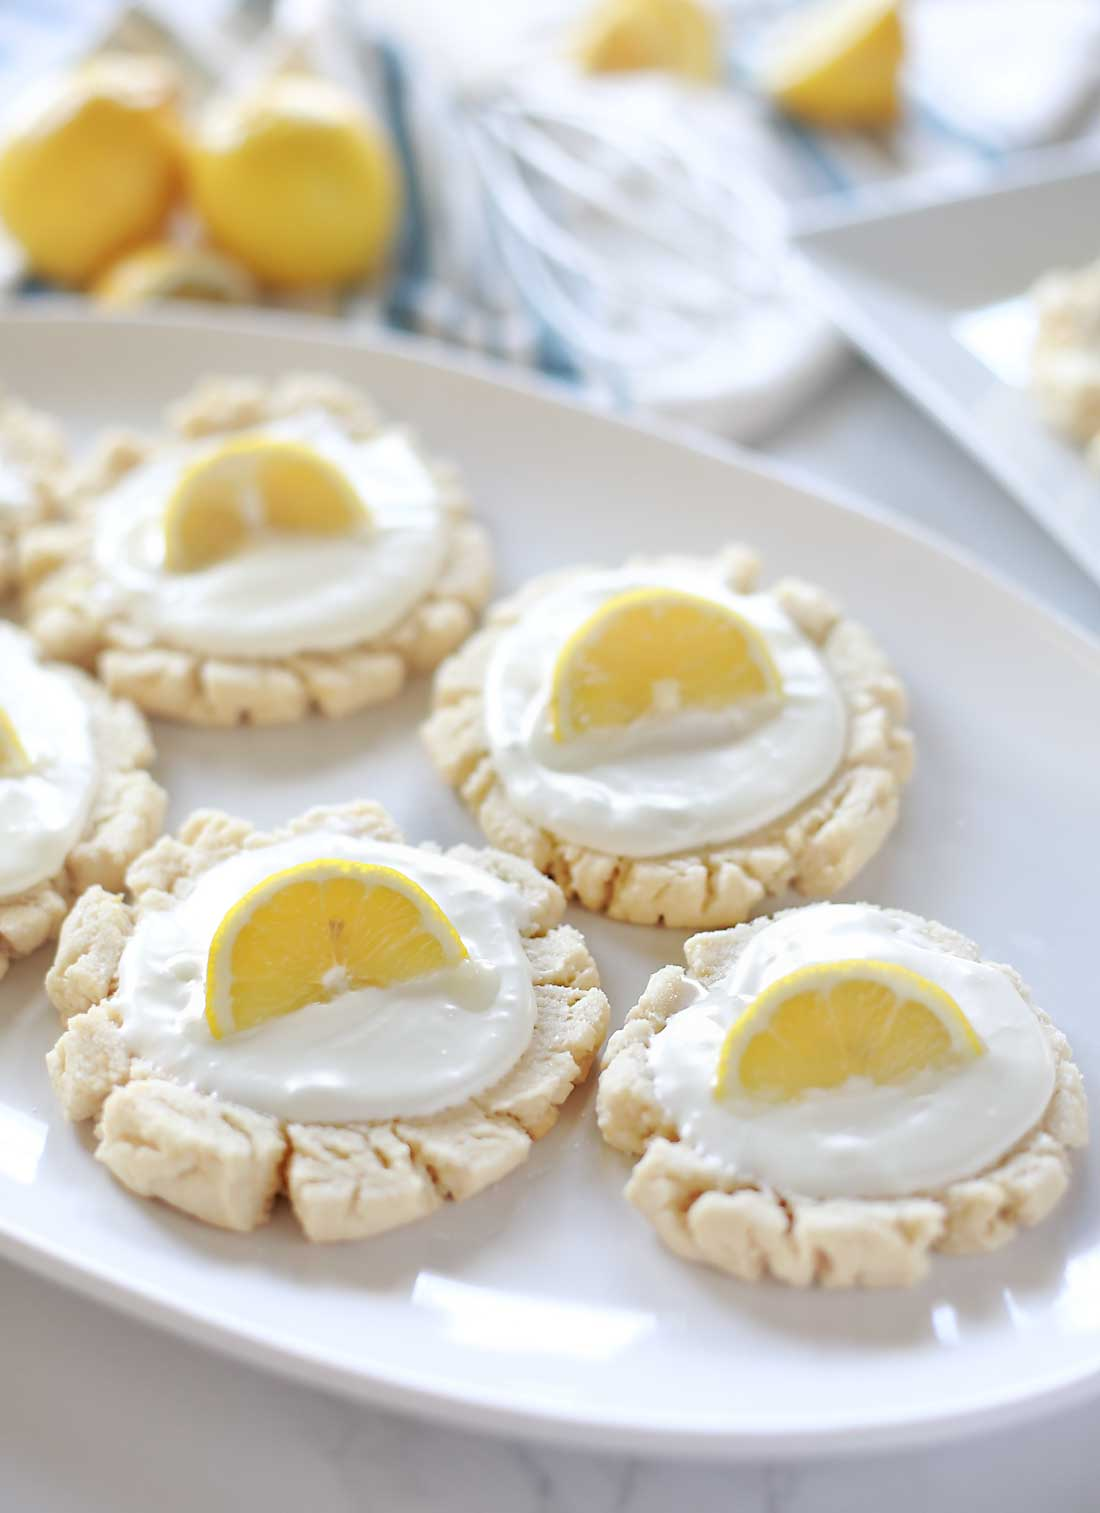 Sour Cream Lemon Sugar Cookies